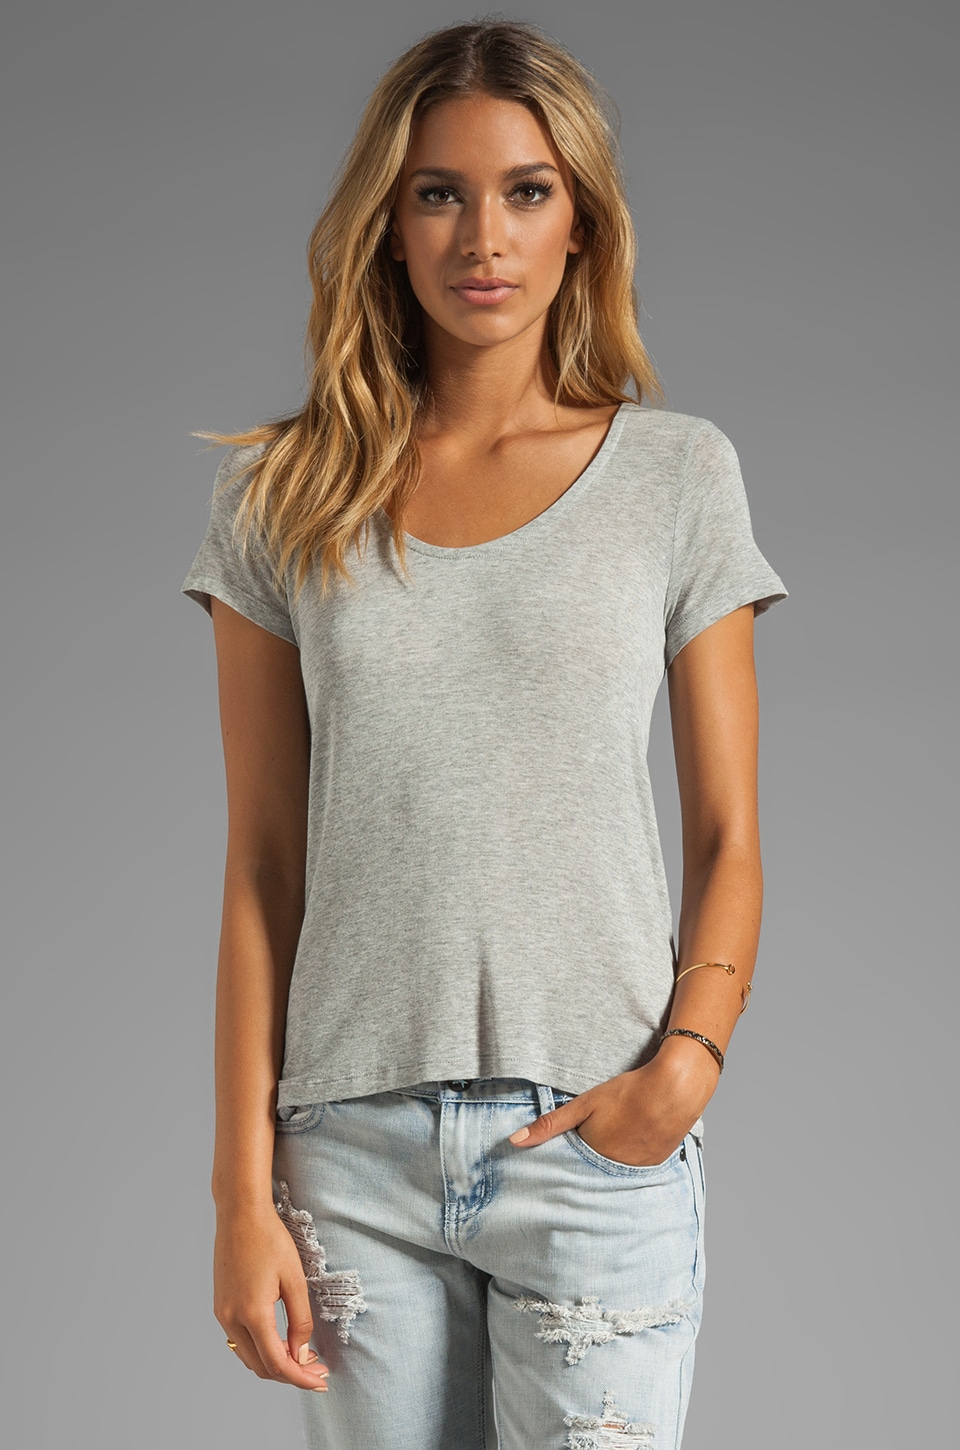 Splendid Lux Jersey Basic Tee in Heather Grey